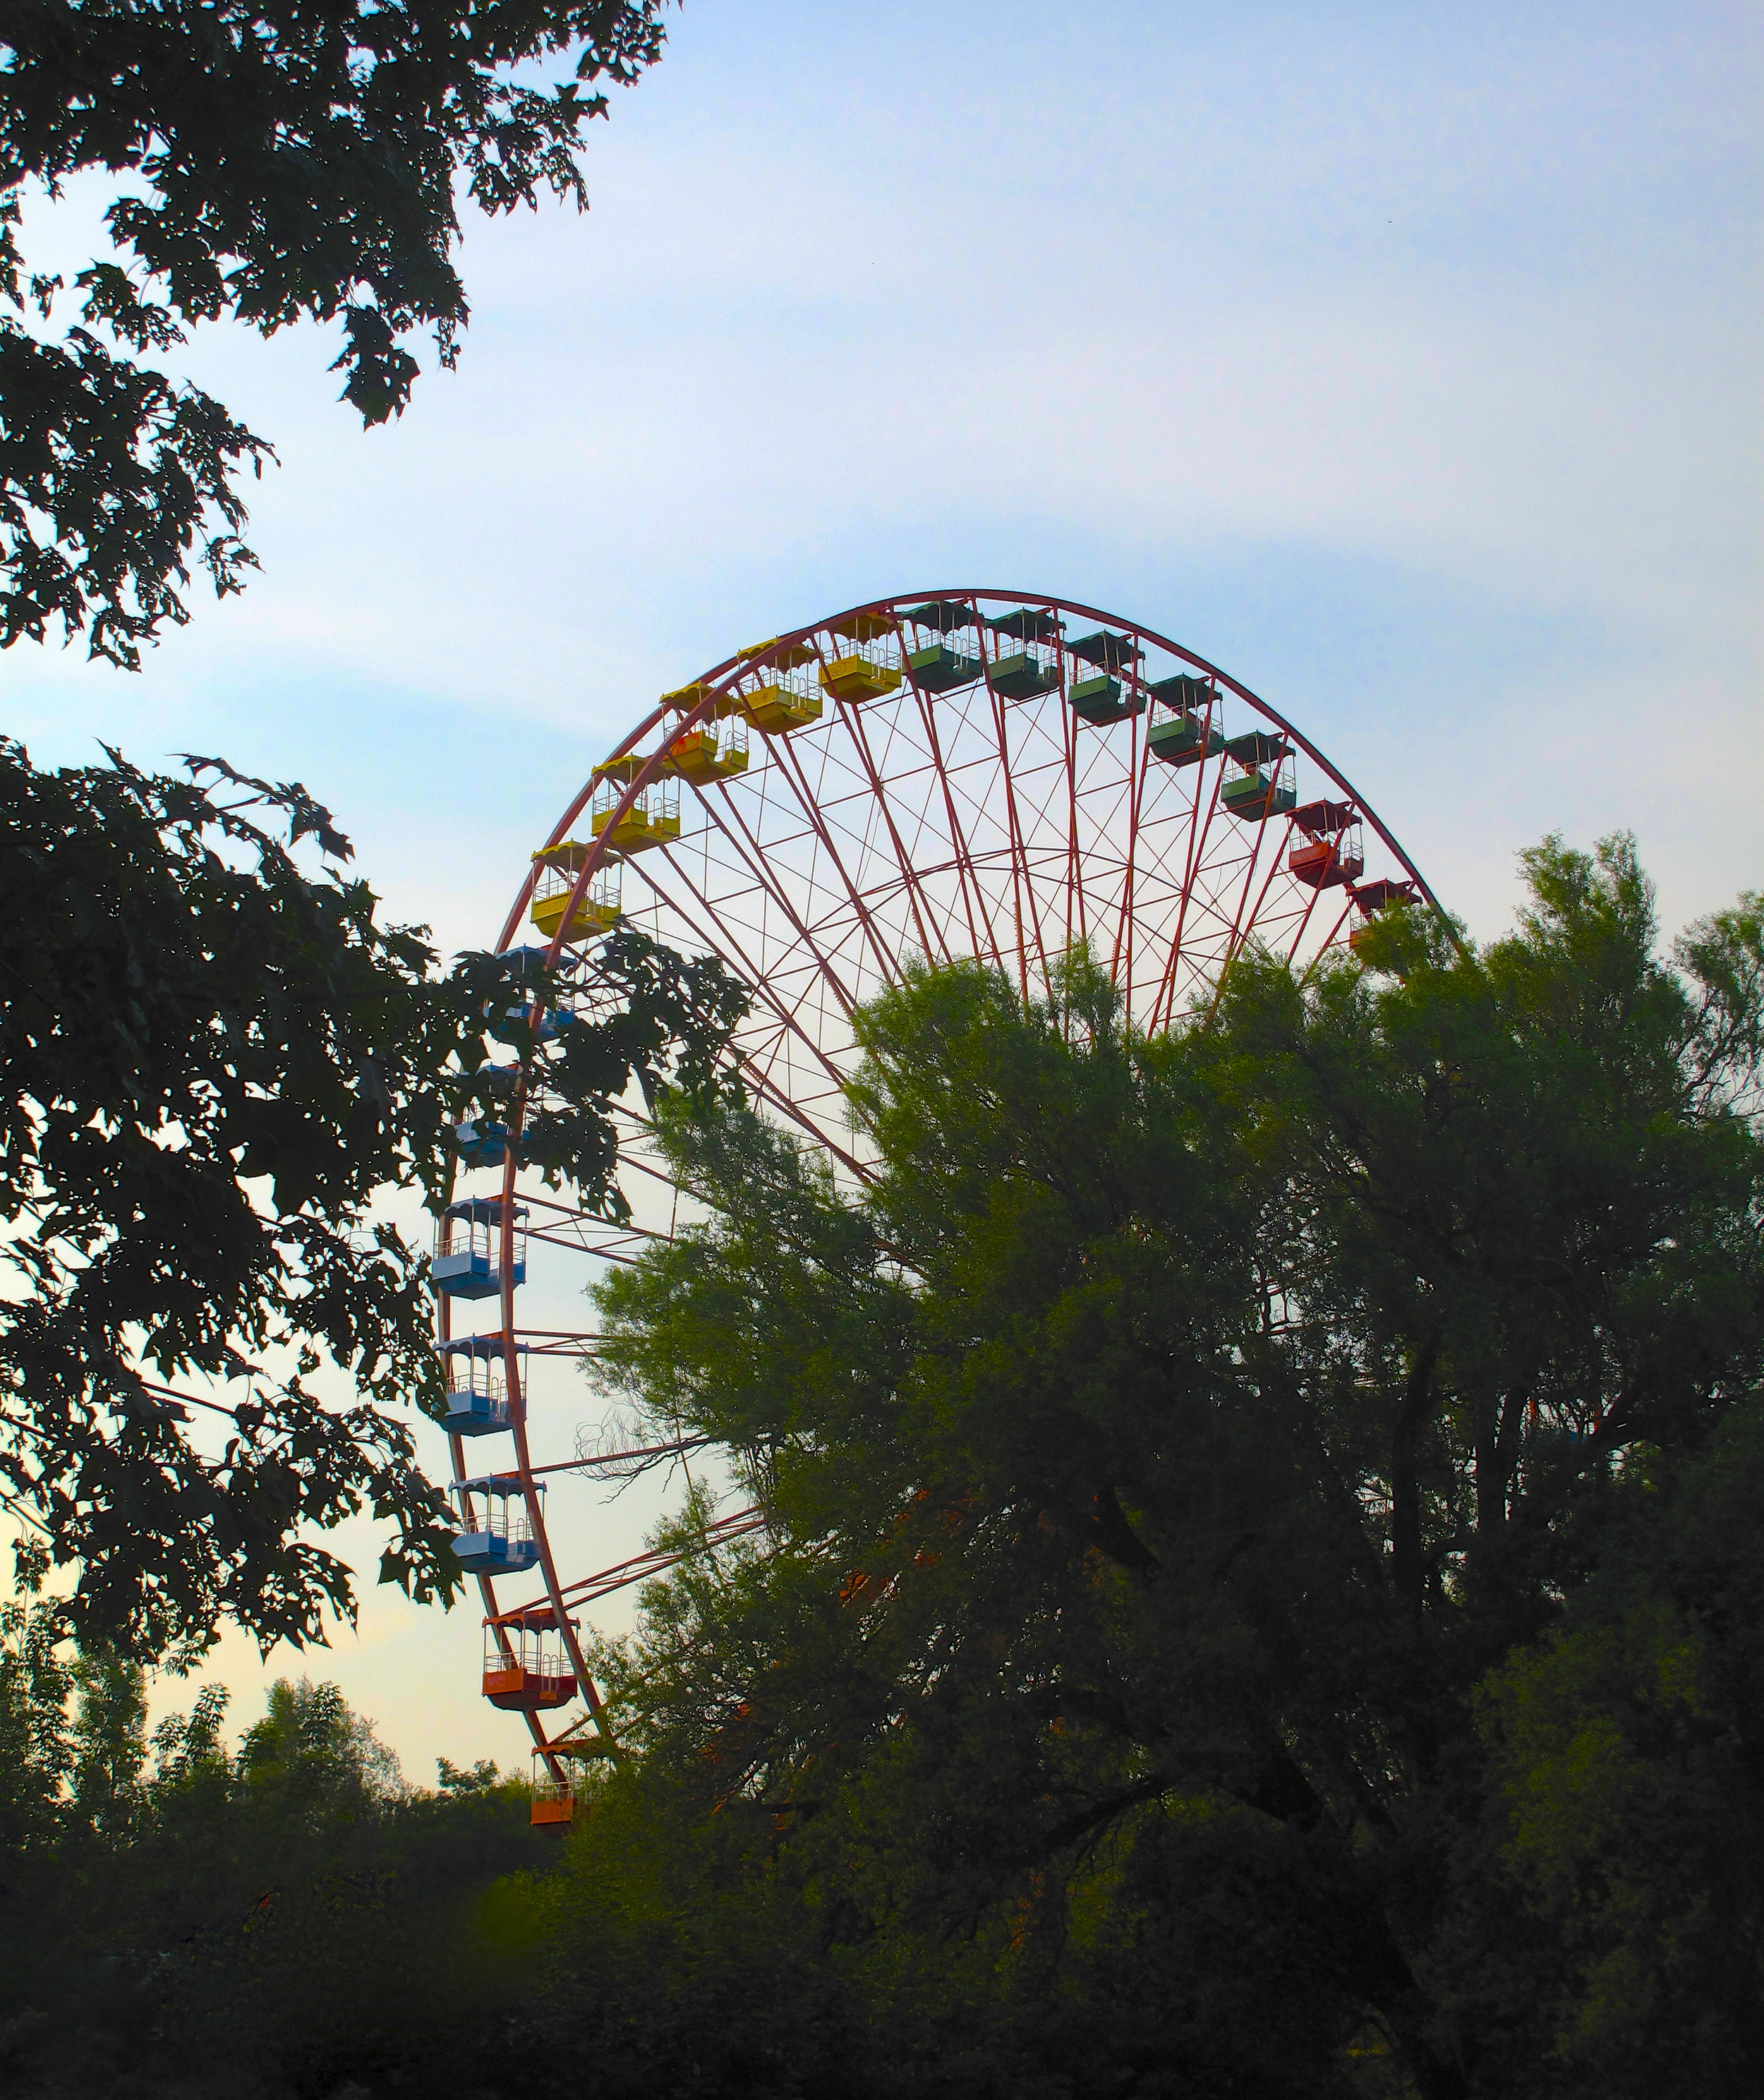 The old ferris wheel at Spree Park in Berlin - it still moves and creaks around.